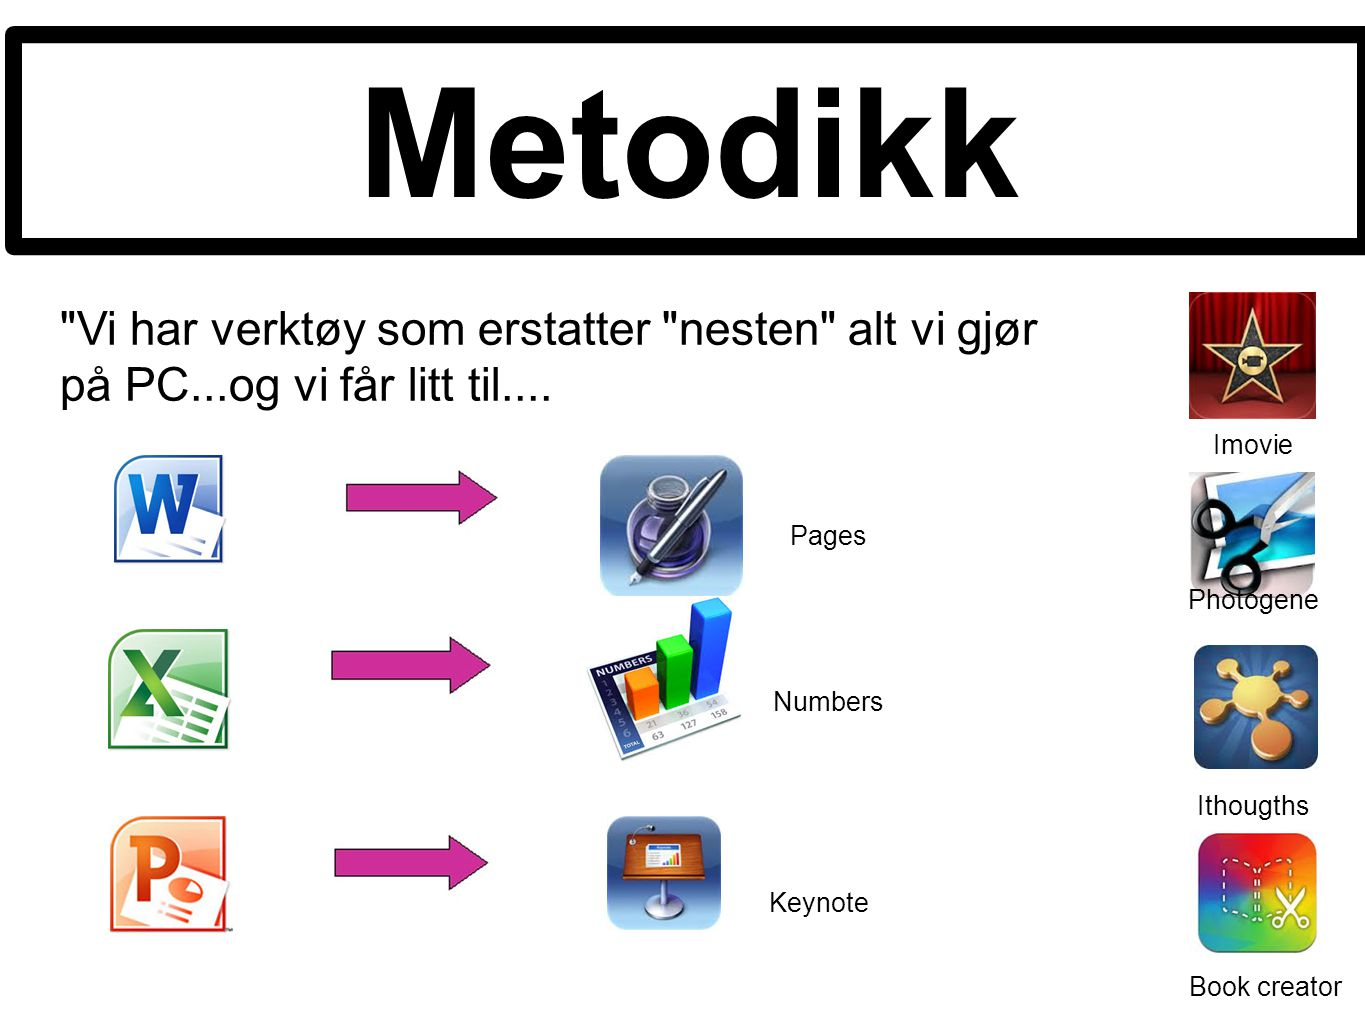 Metodikk Imovie Pages Photogene Numbers Ithougths Keynote Book creator